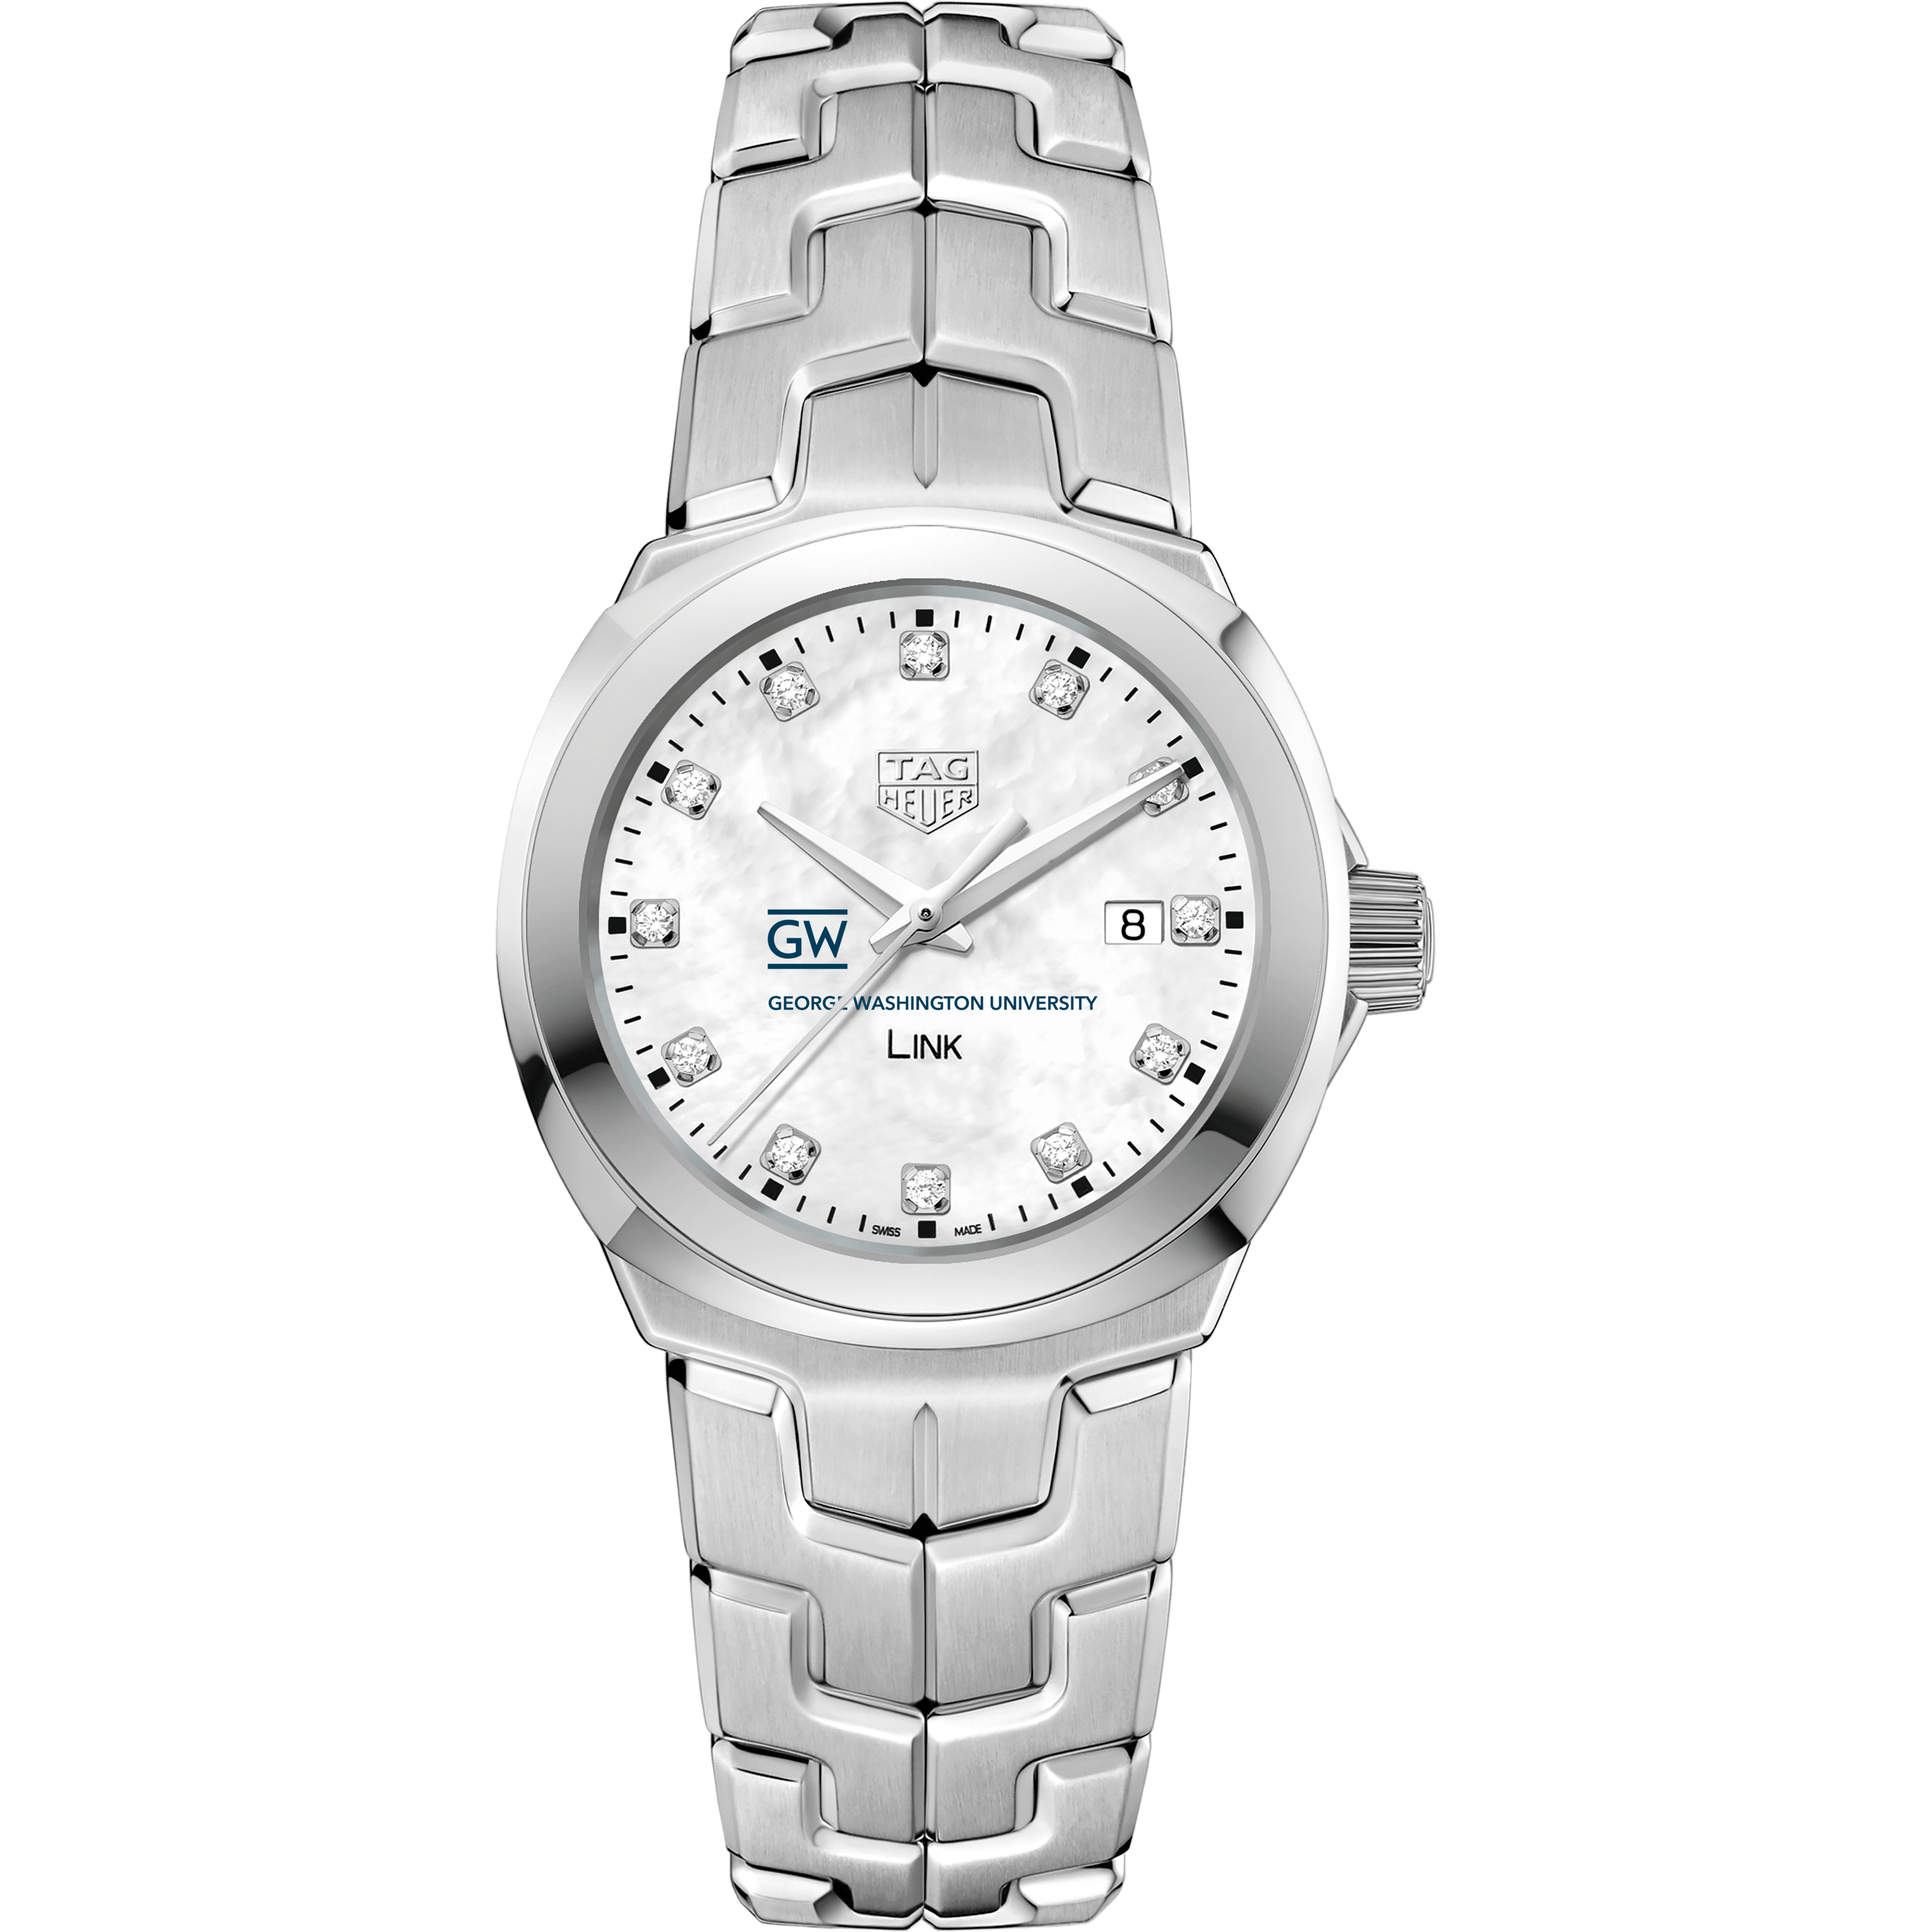 George Washington University TAG Heuer Diamond Dial LINK for Women - Image 2